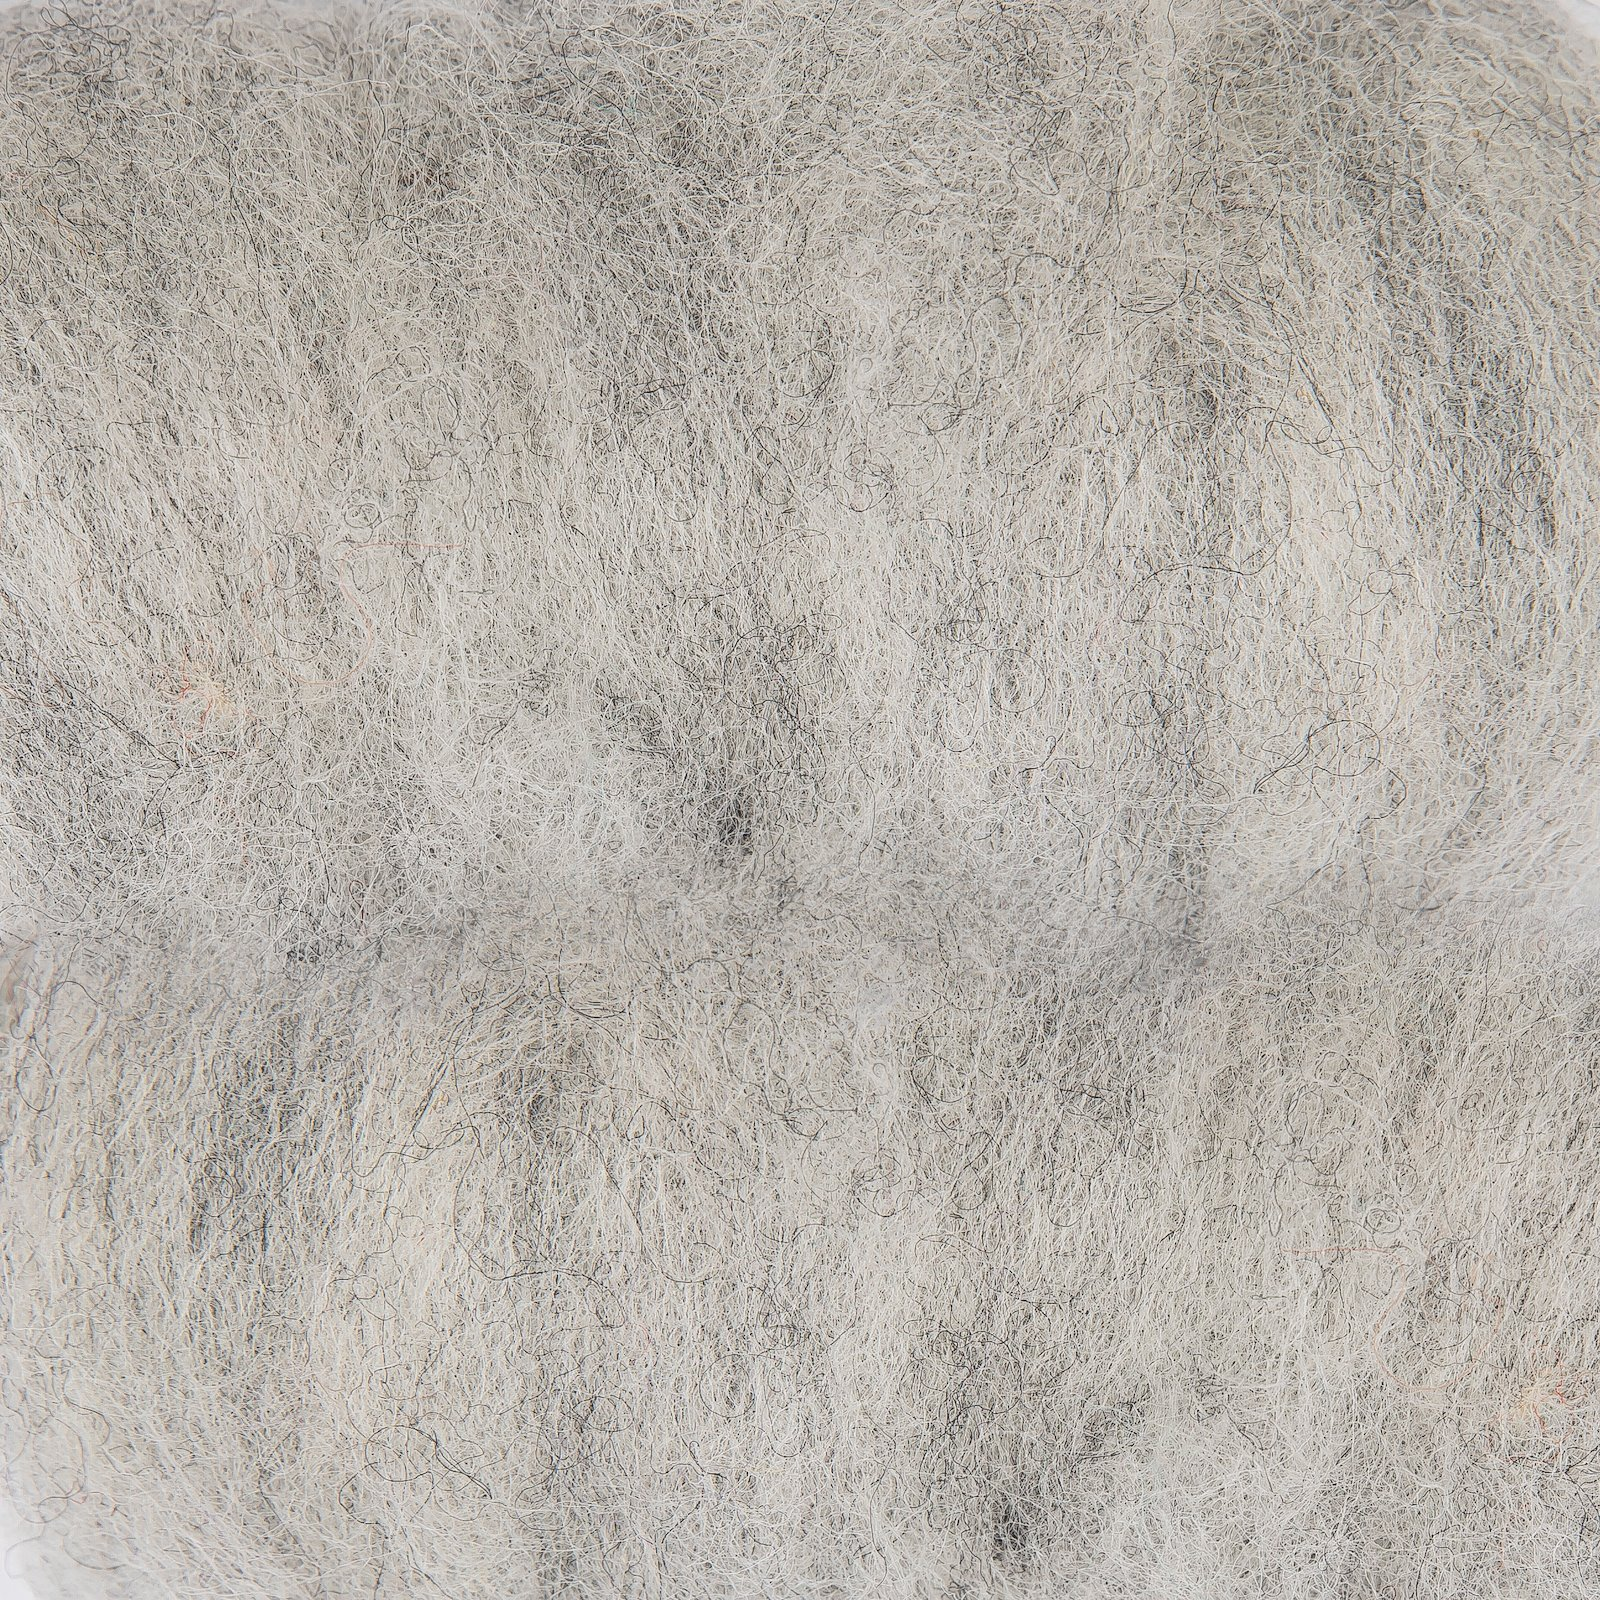 Carded wool grey 50g 90048042_pack